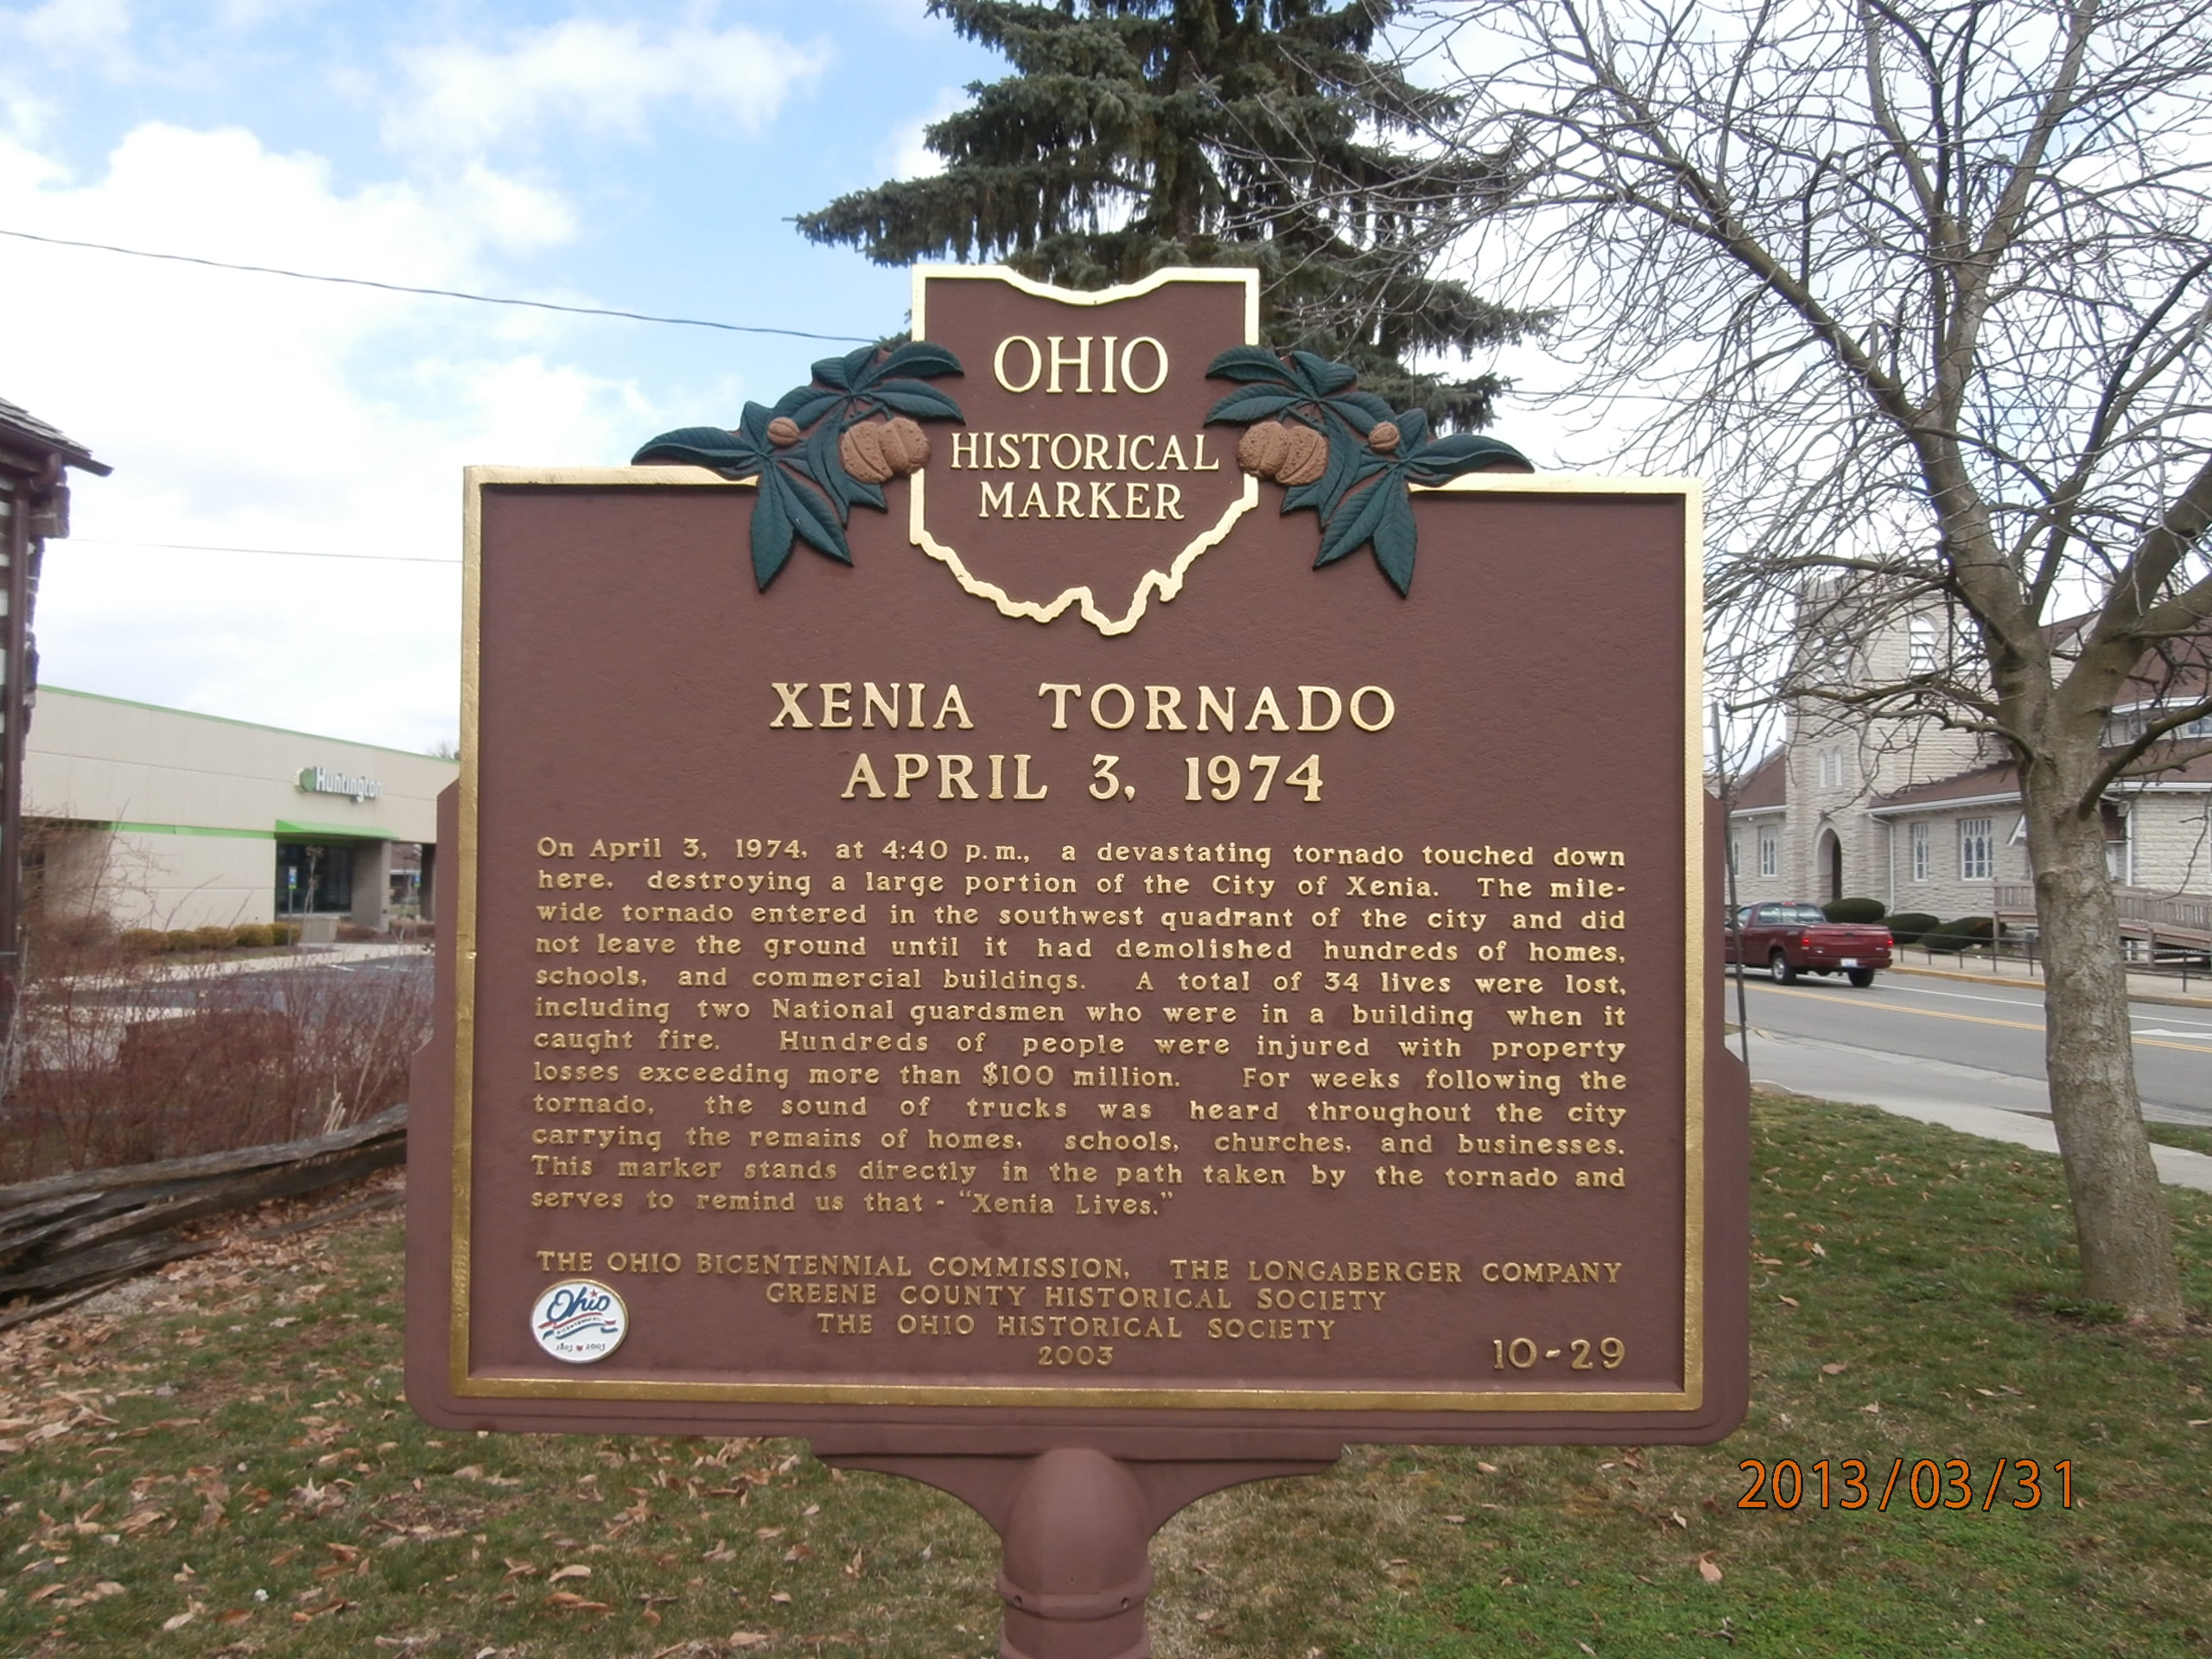 There is also a nearby historical marker that discusses the severity of the Xenia Tornado.